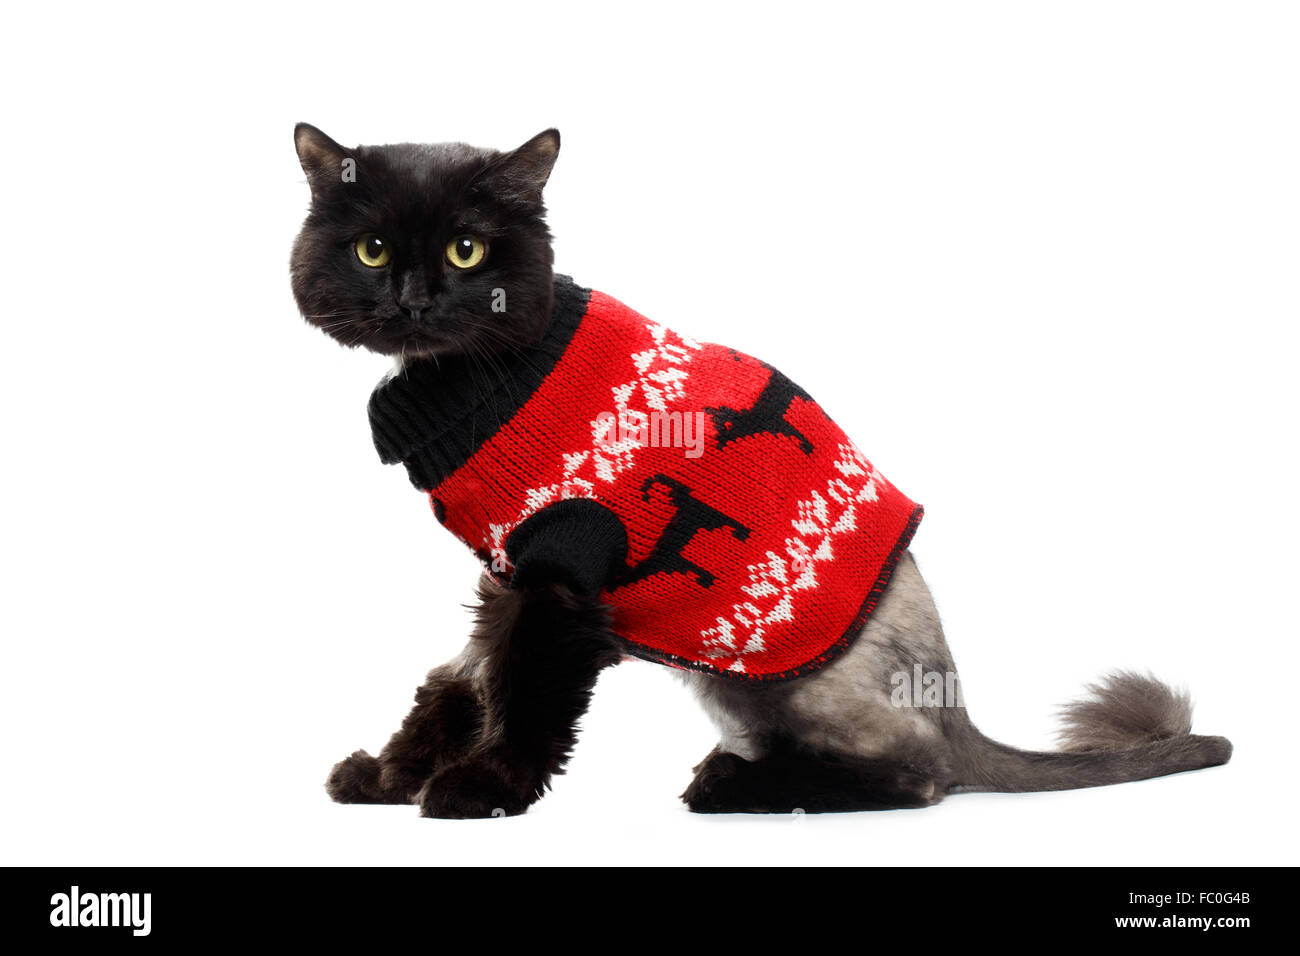 black cat wearing in a red Christmas cardigan - Stock Image